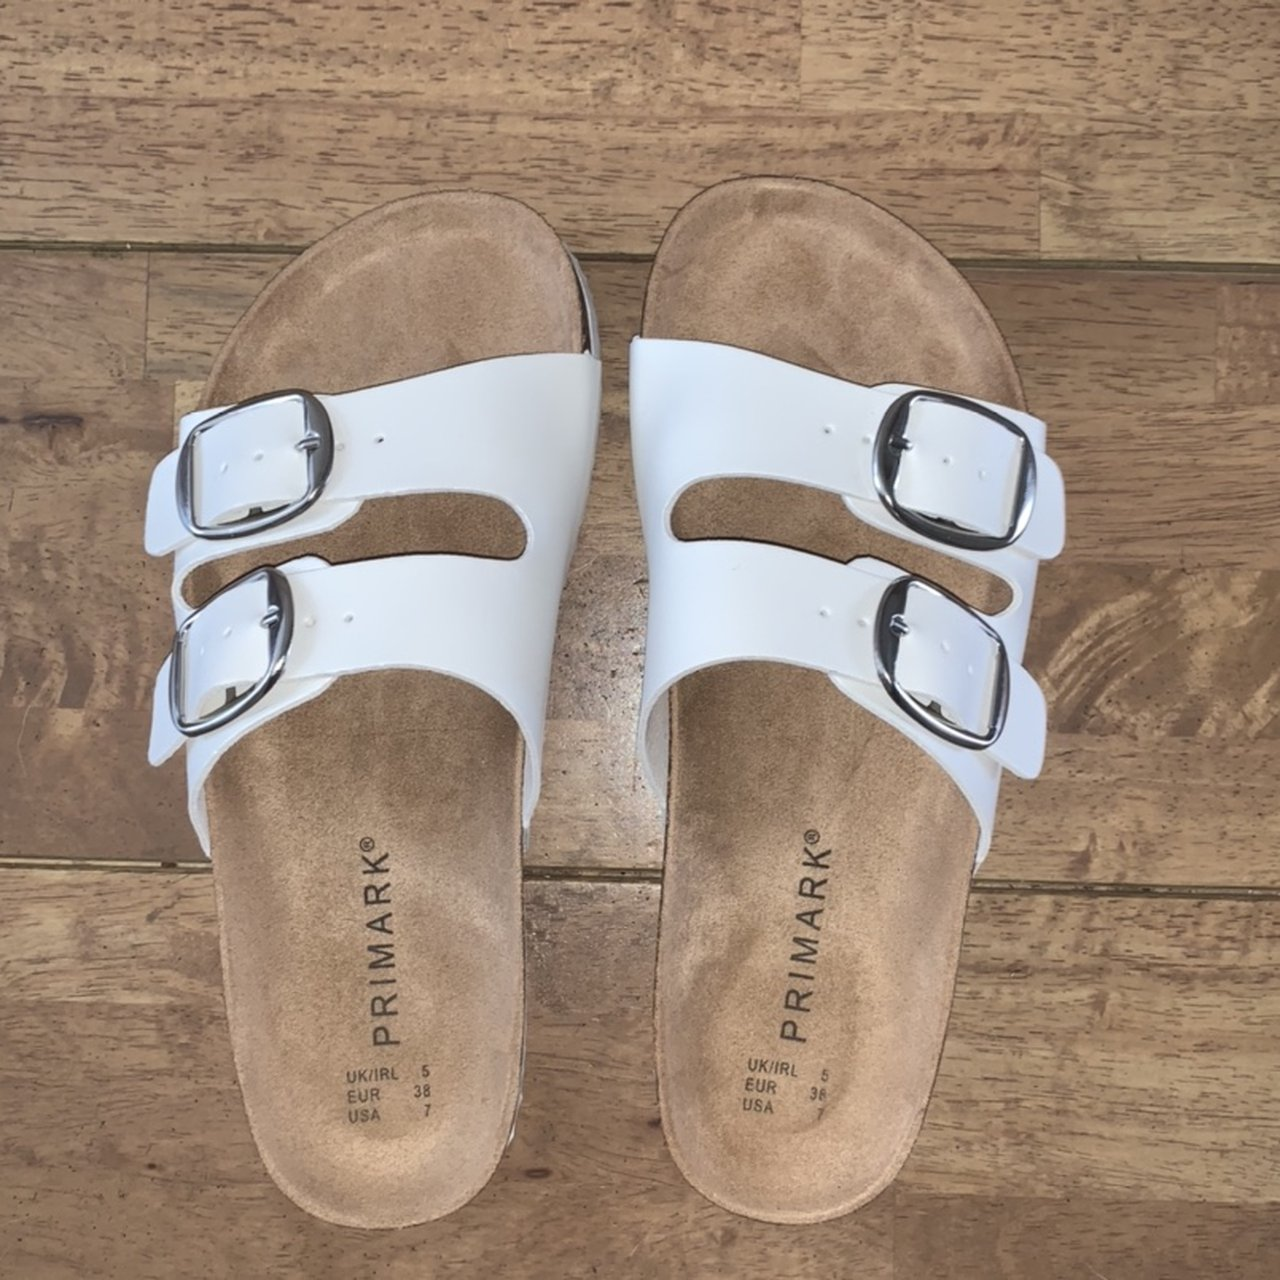 Primark white sandals with two buckles